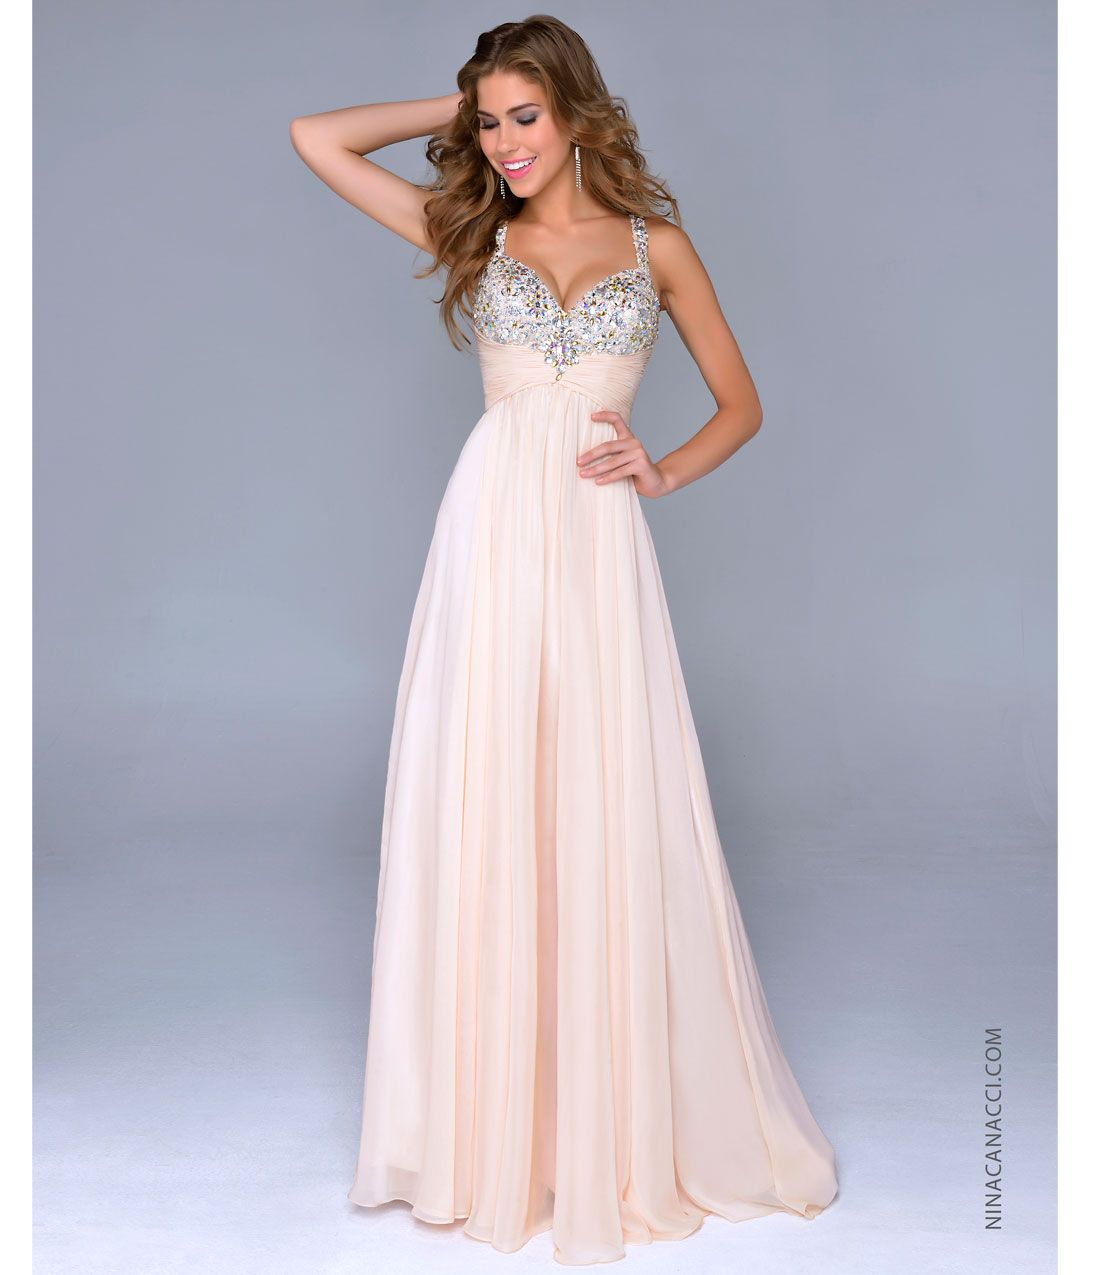 Best 1920s Prom Dresses - Great Gatsby Style Gowns | Retro ...